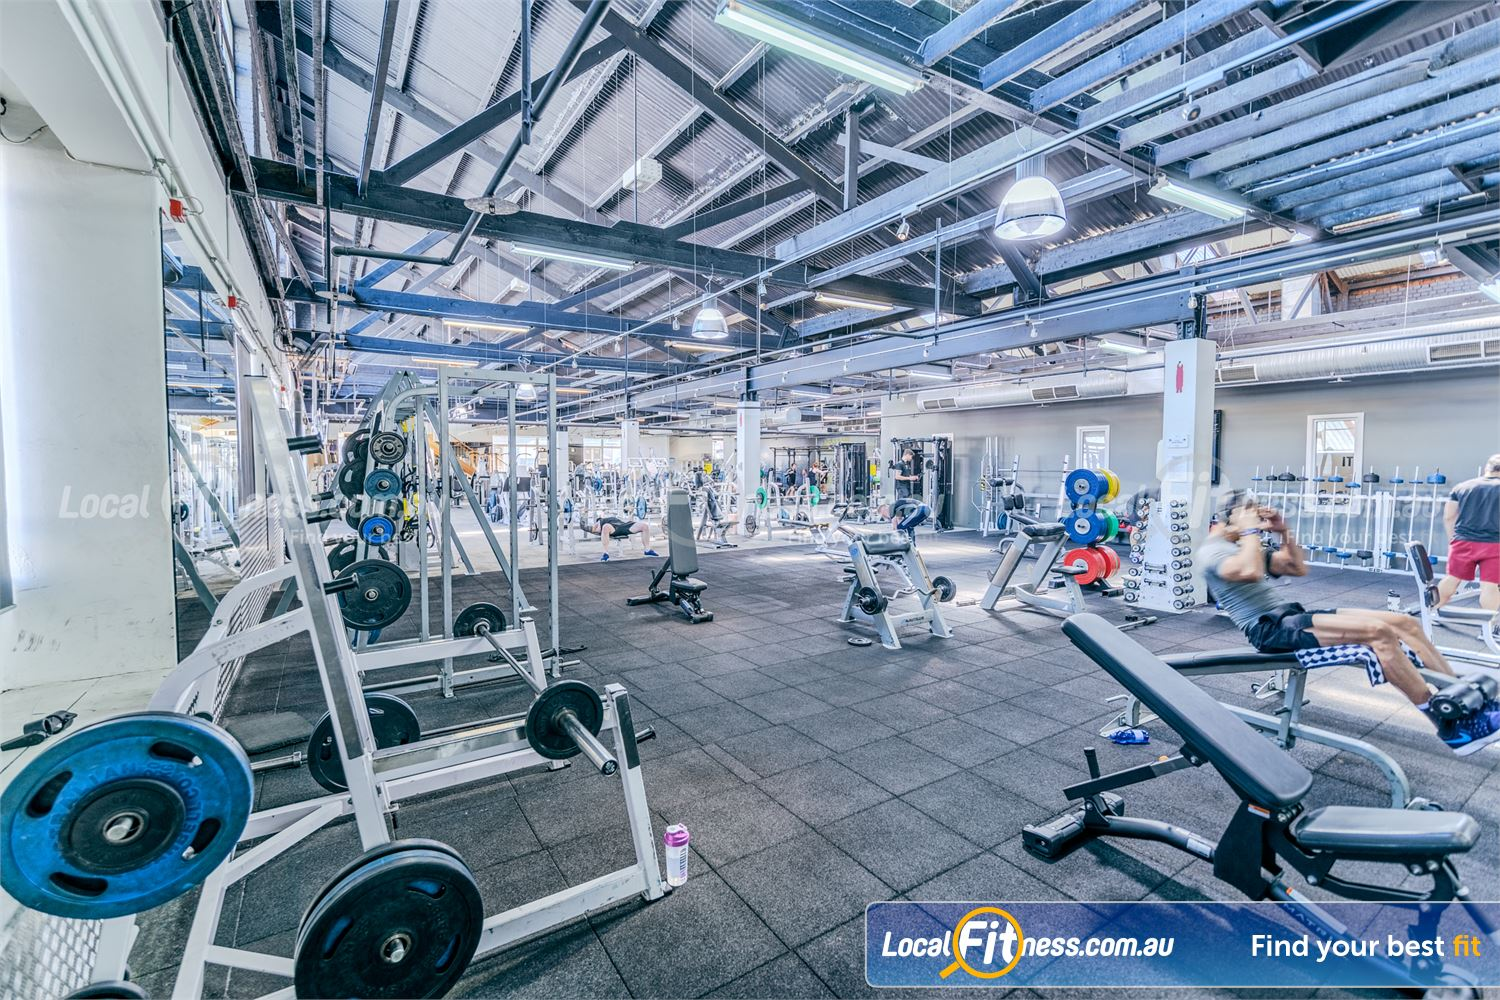 Goodlife Health Clubs Prahran Our Prahran gym features an open plan layout with plenty of natural lighting.